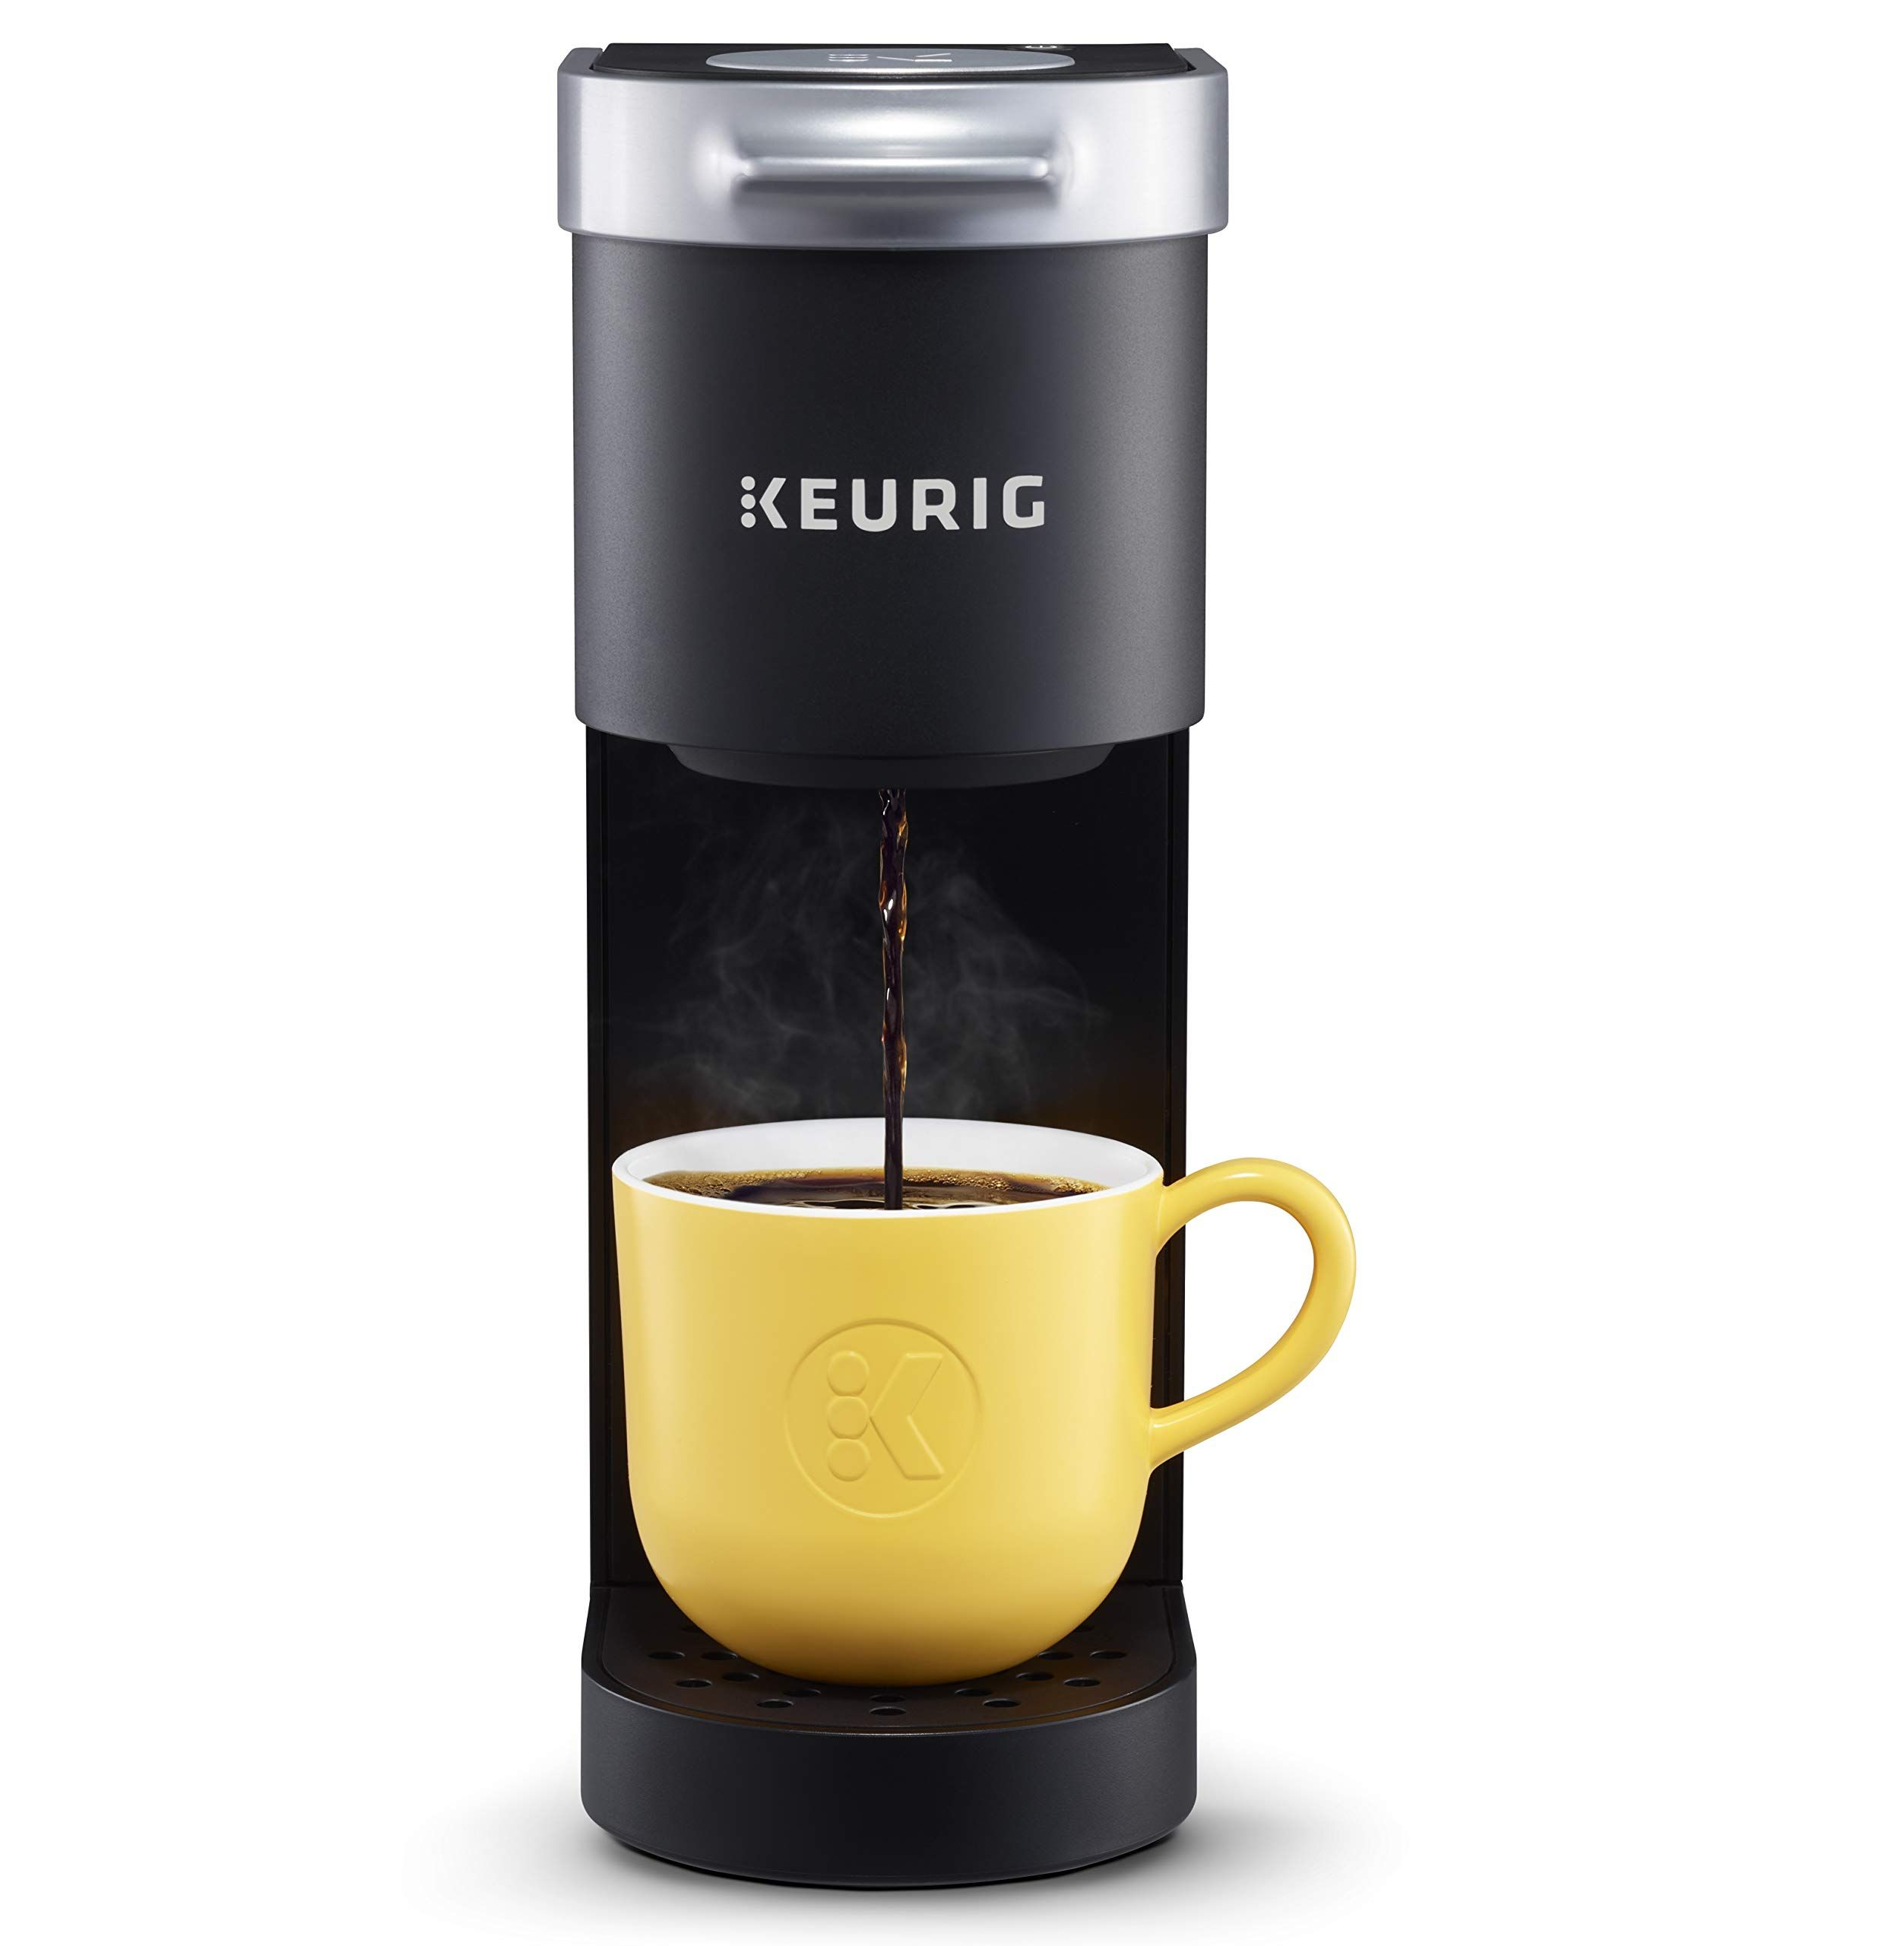 Keurig K Mini Maker Single Serve K Cup Pod Coffee Brewer 6 To 12 Oz Brew Sizes Matte Black Camping Coffee Maker Single Coffee Maker Pod Coffee Makers